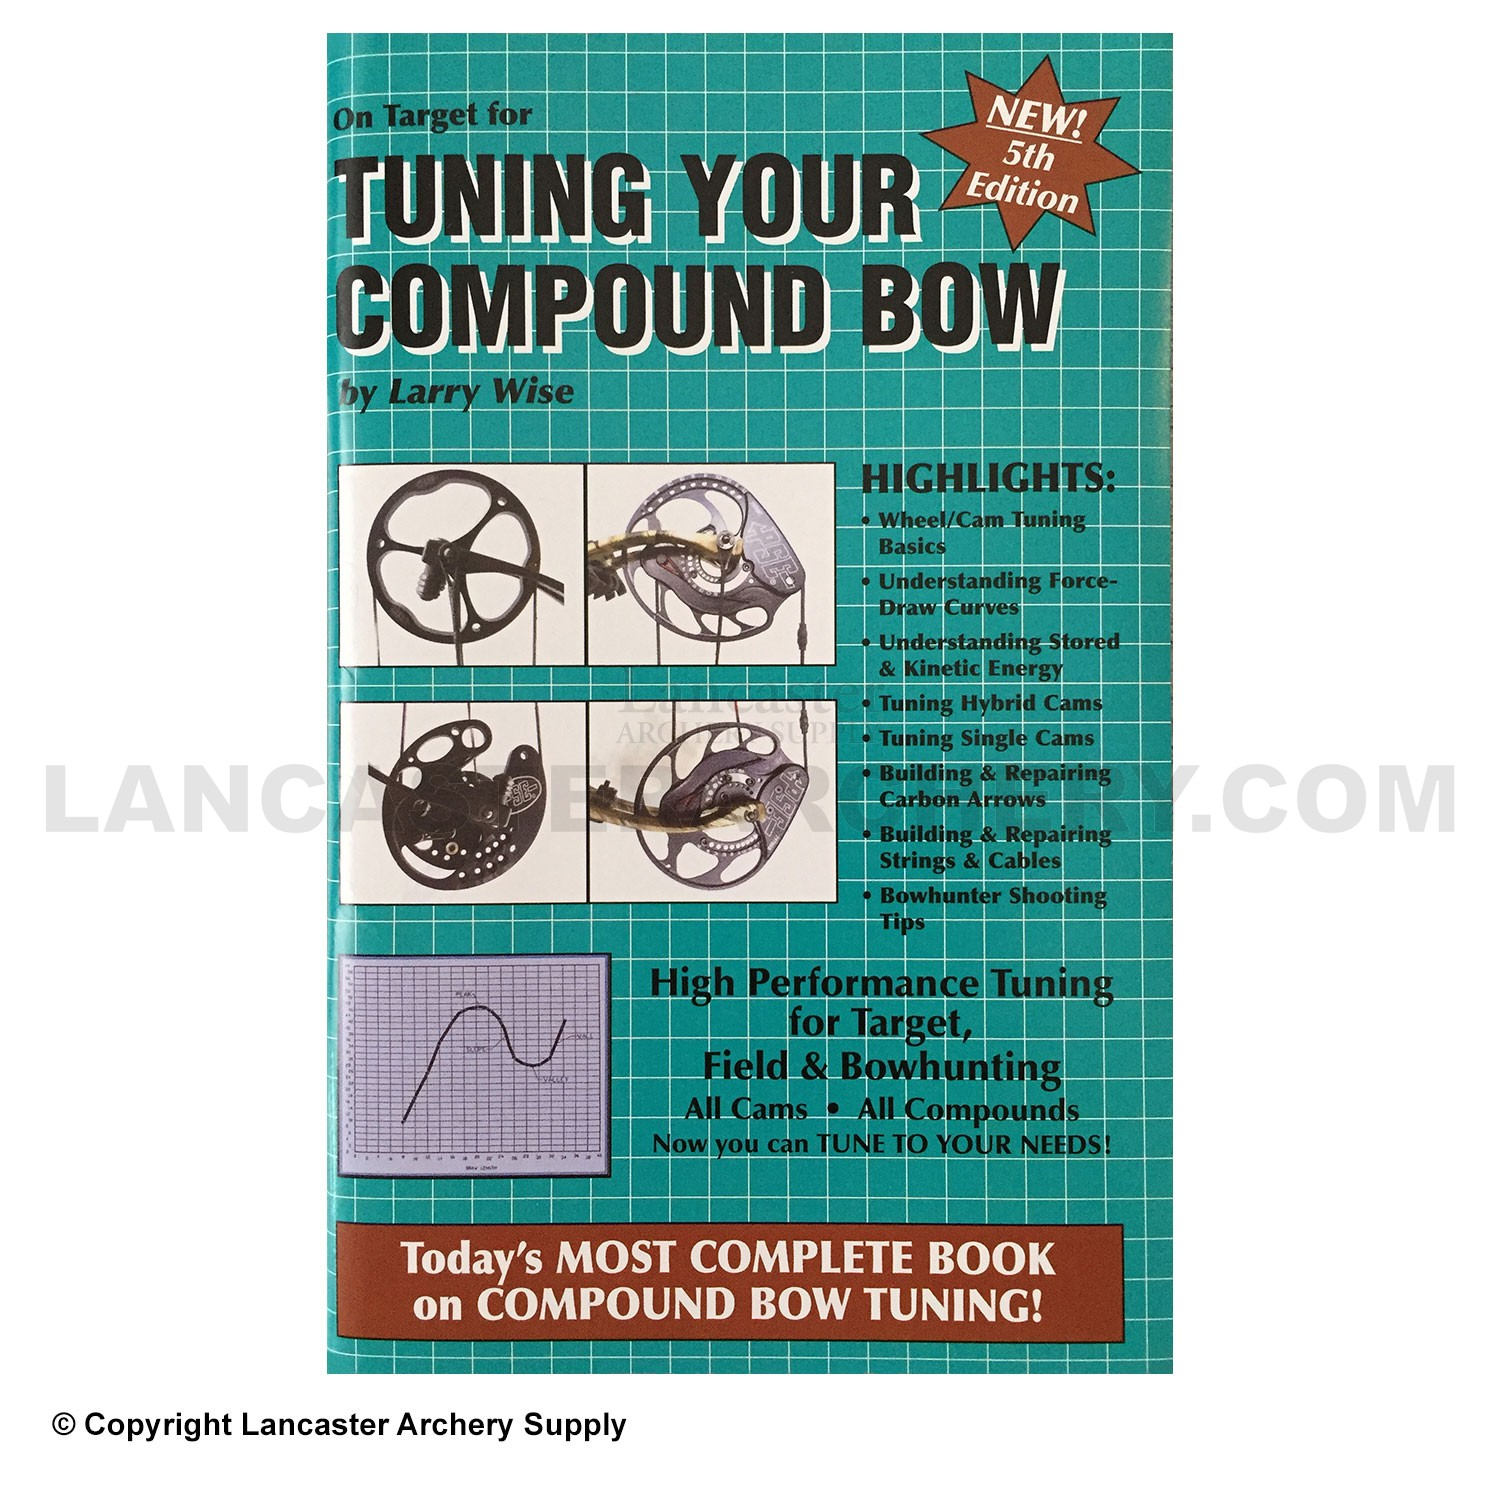 Tuning Your Compound Bow 5th Edition Book by Larry Wise